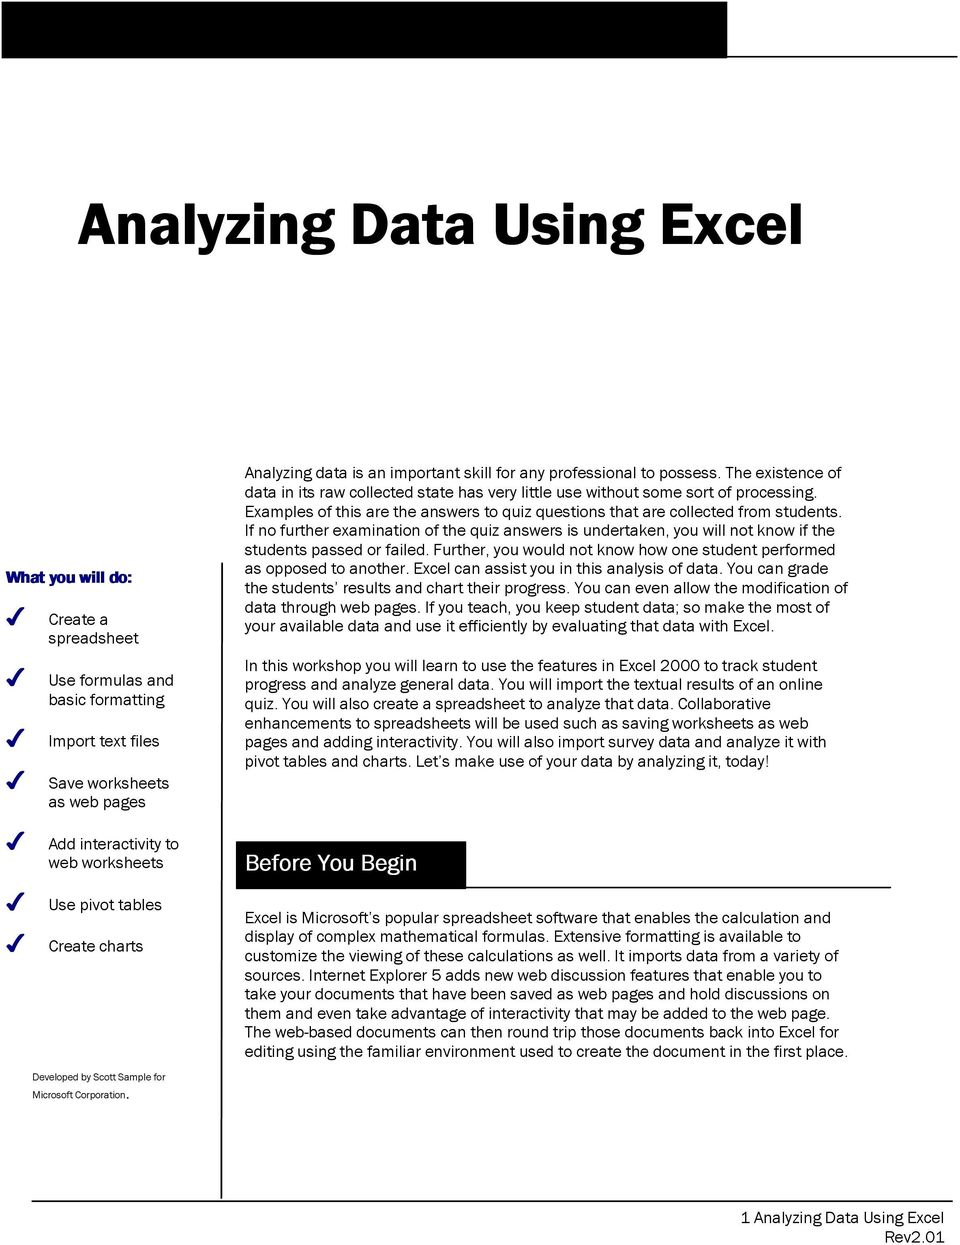 The existence of data in its raw collected state has very little use without some sort of processing. Examples of this are the answers to quiz questions that are collected from students.